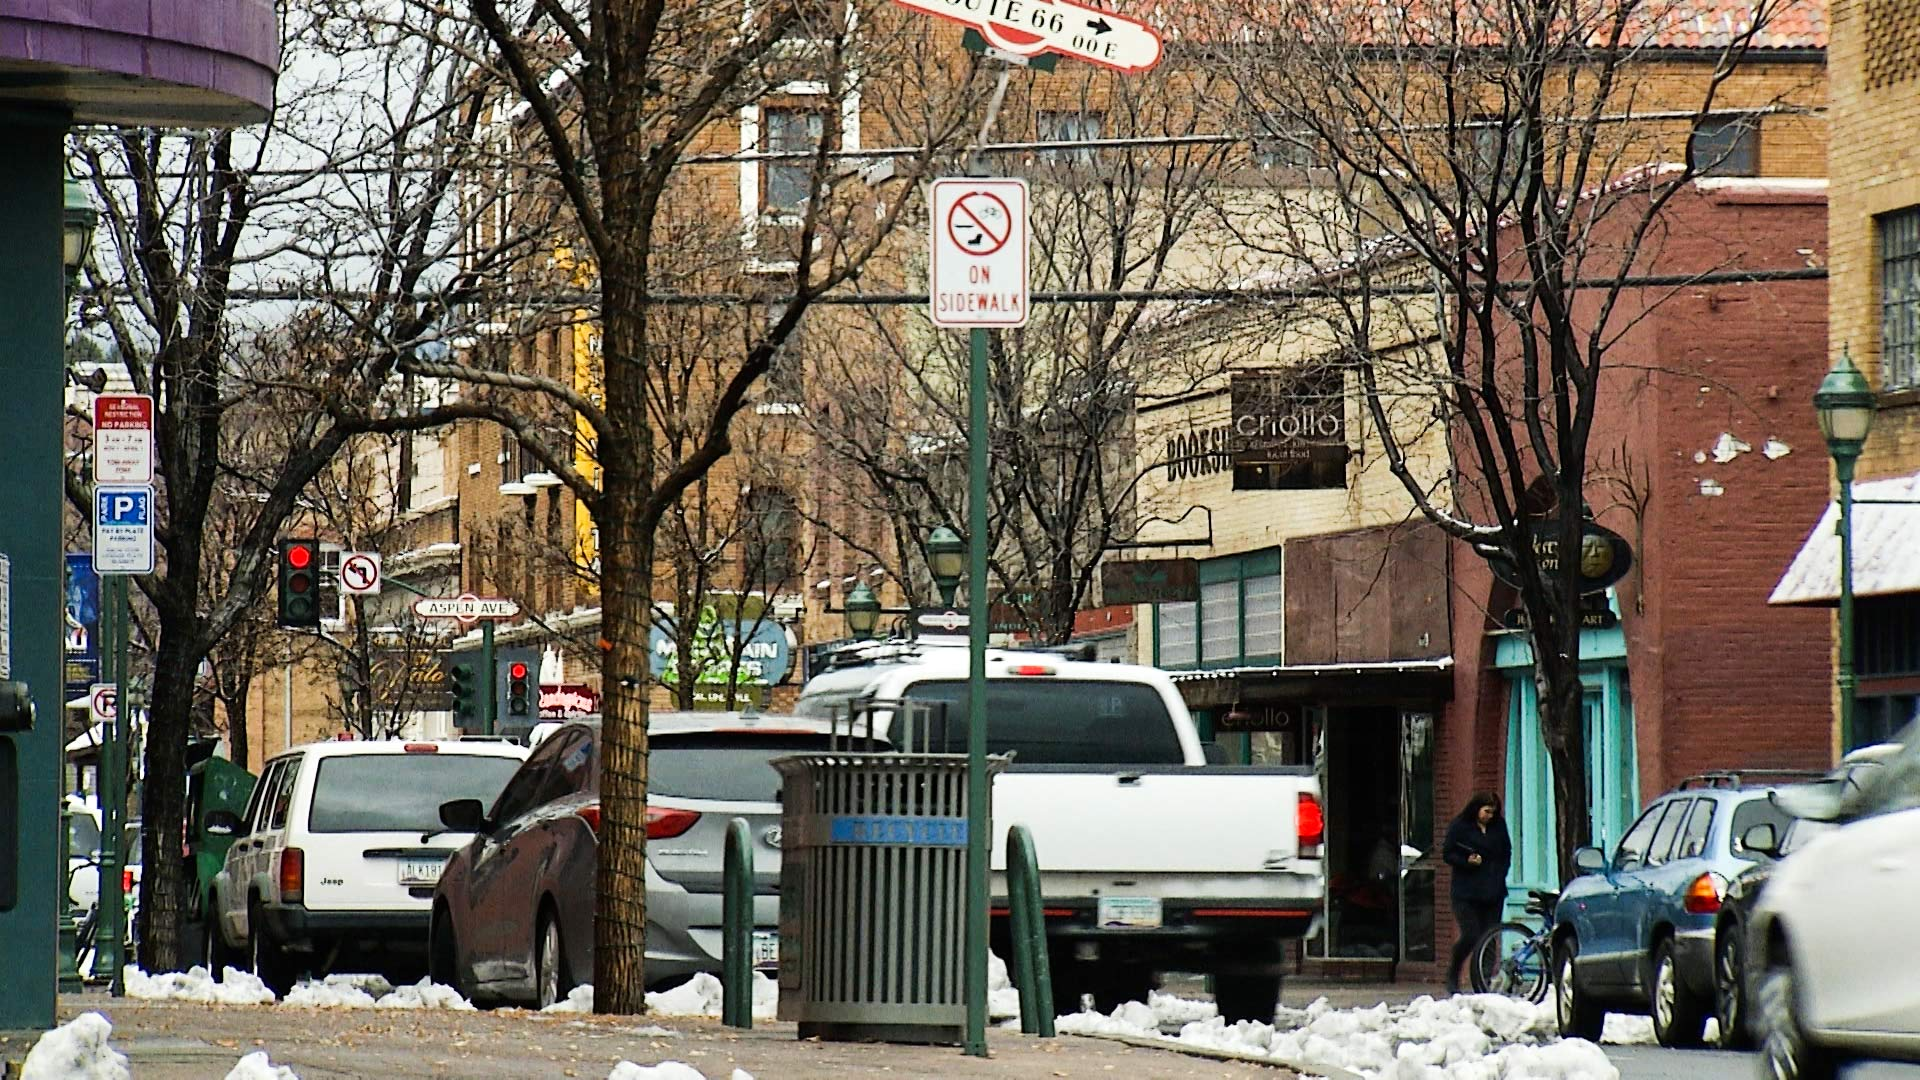 San Francisco Street in Flagstaff, January 2018.